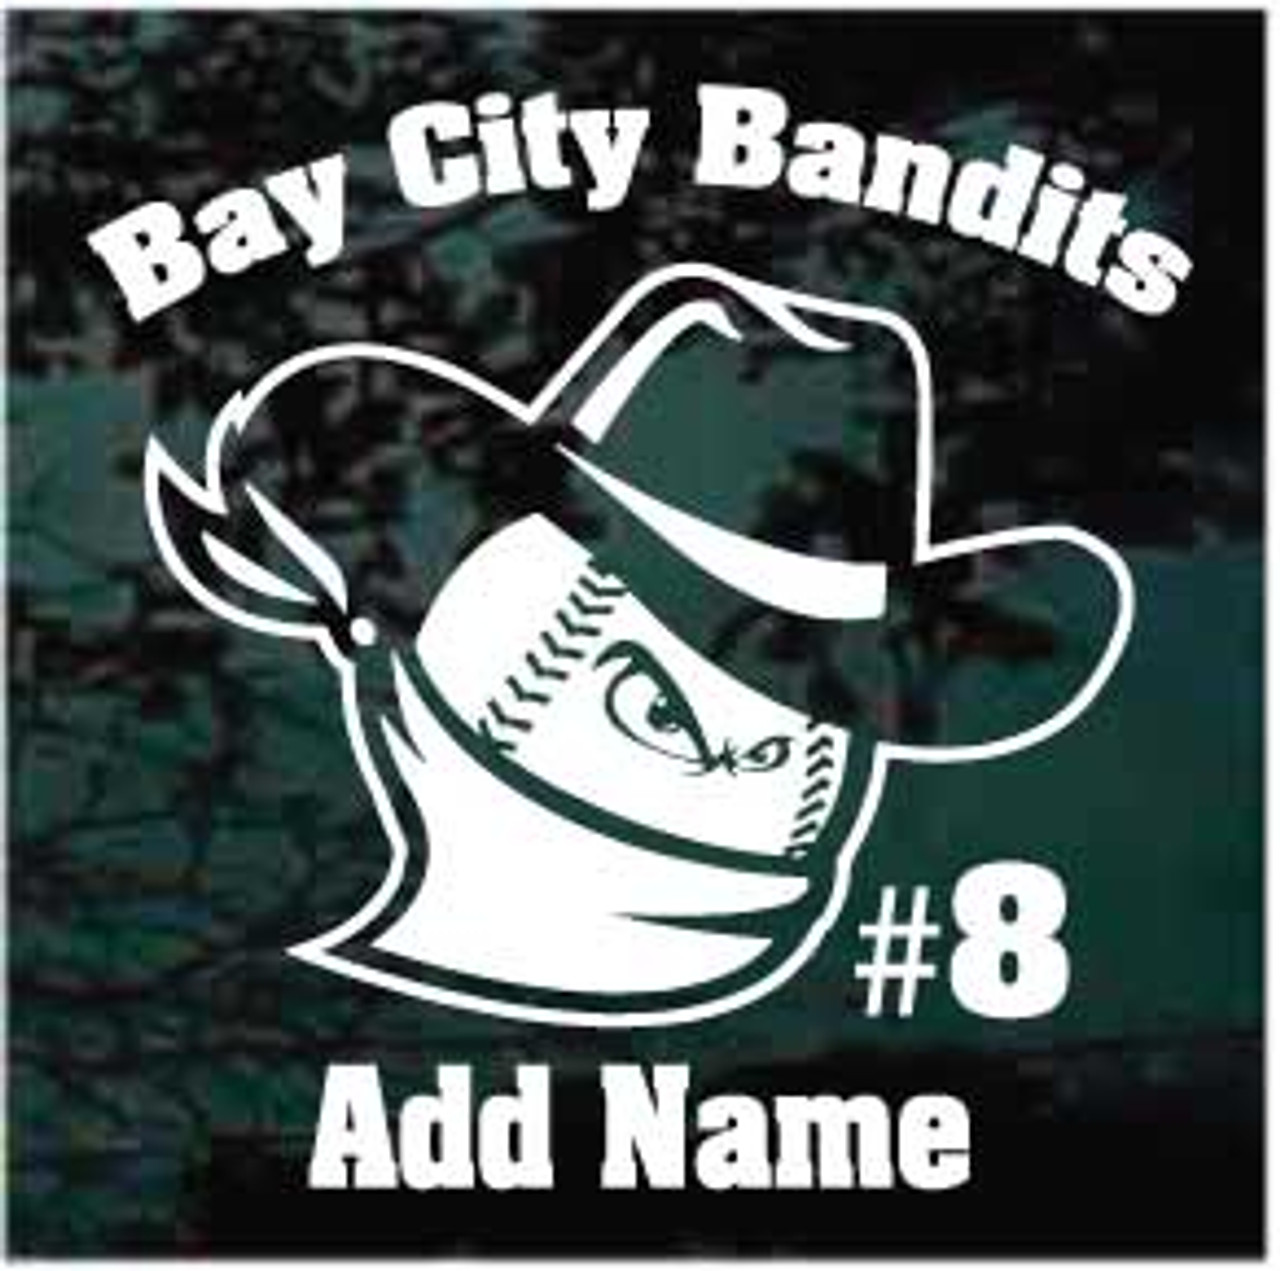 Bay City Bandits Baseball Window Decals